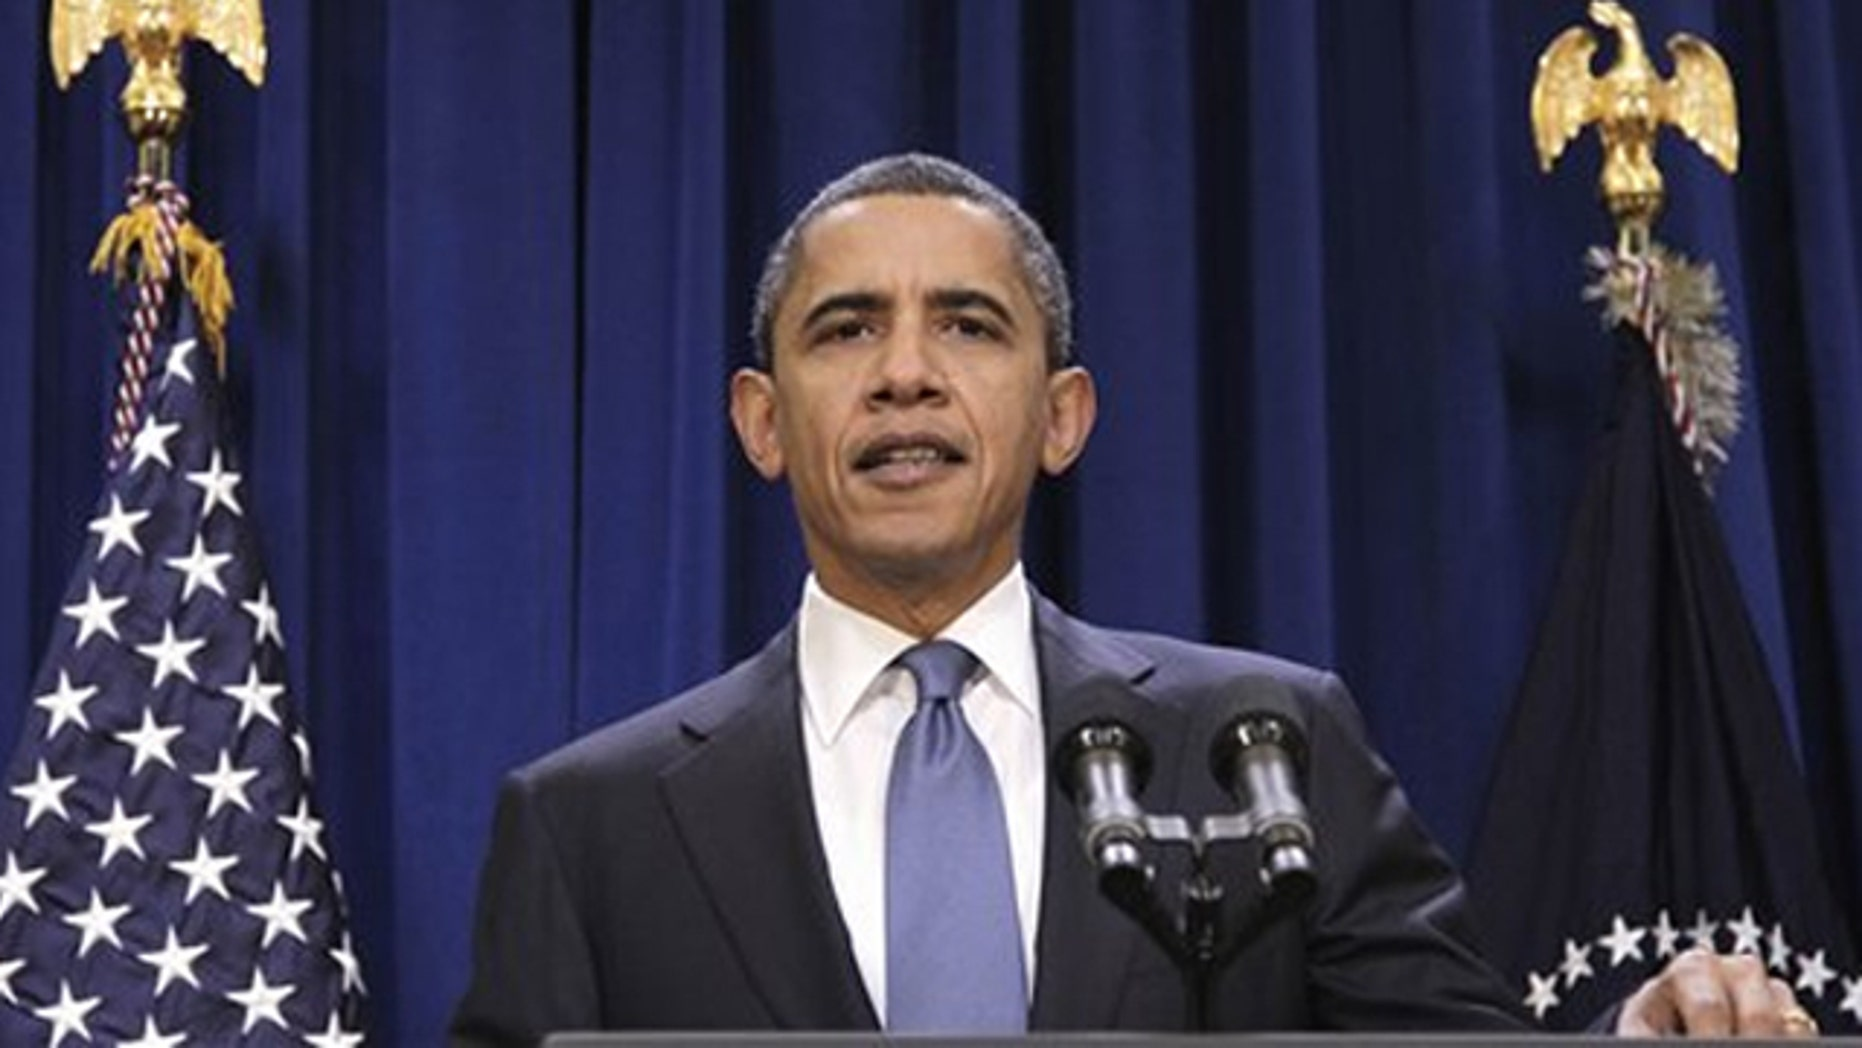 President Obama delivers a statement in the Old Executive Office Building in Washington Nov. 29. (AP Photo)